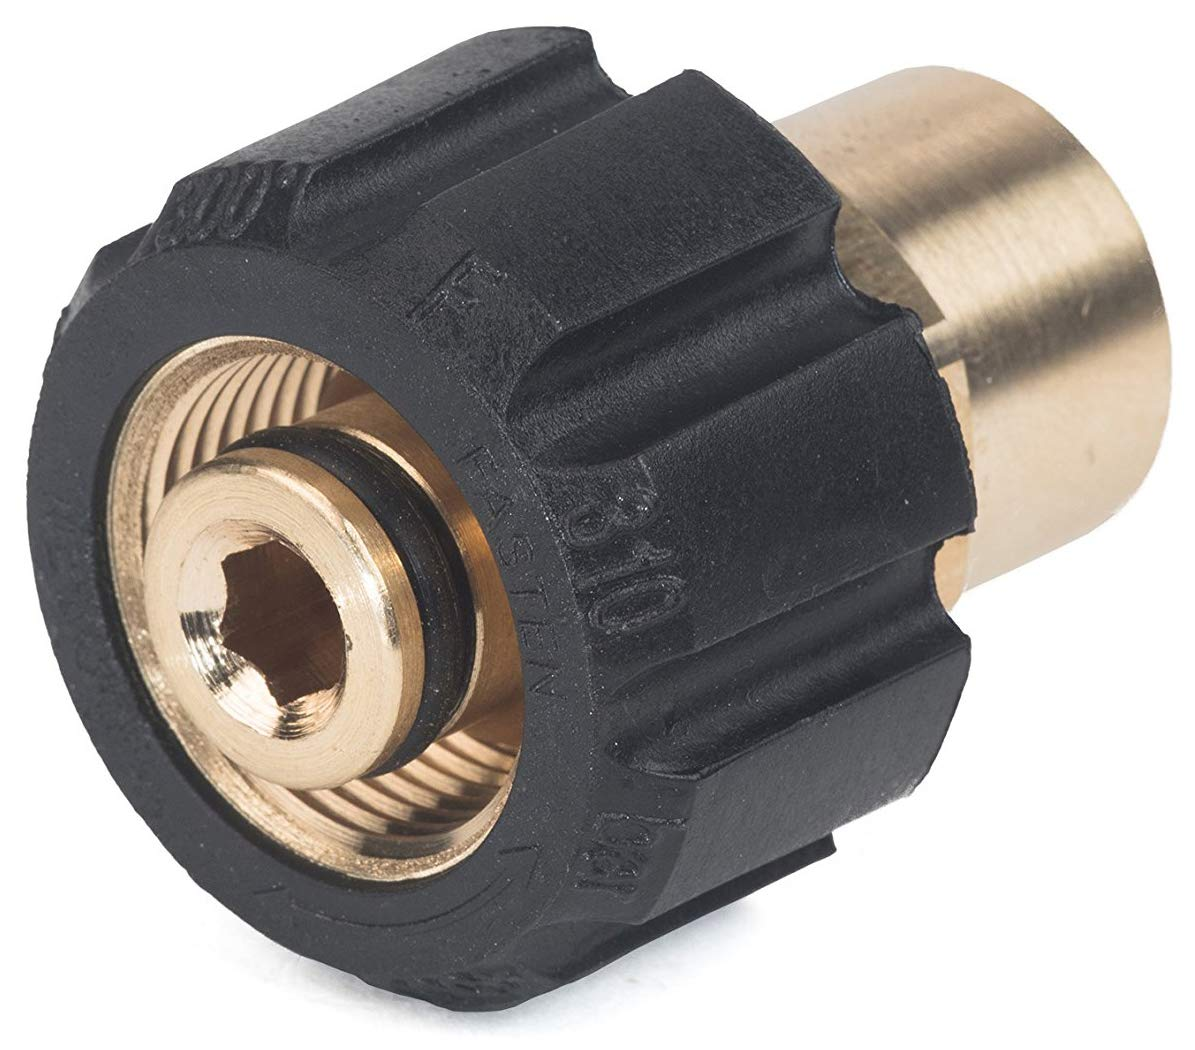 Karcher M22 3/8 Female Swivel Nut Replacement for Gas Pressure Washers by Karcher